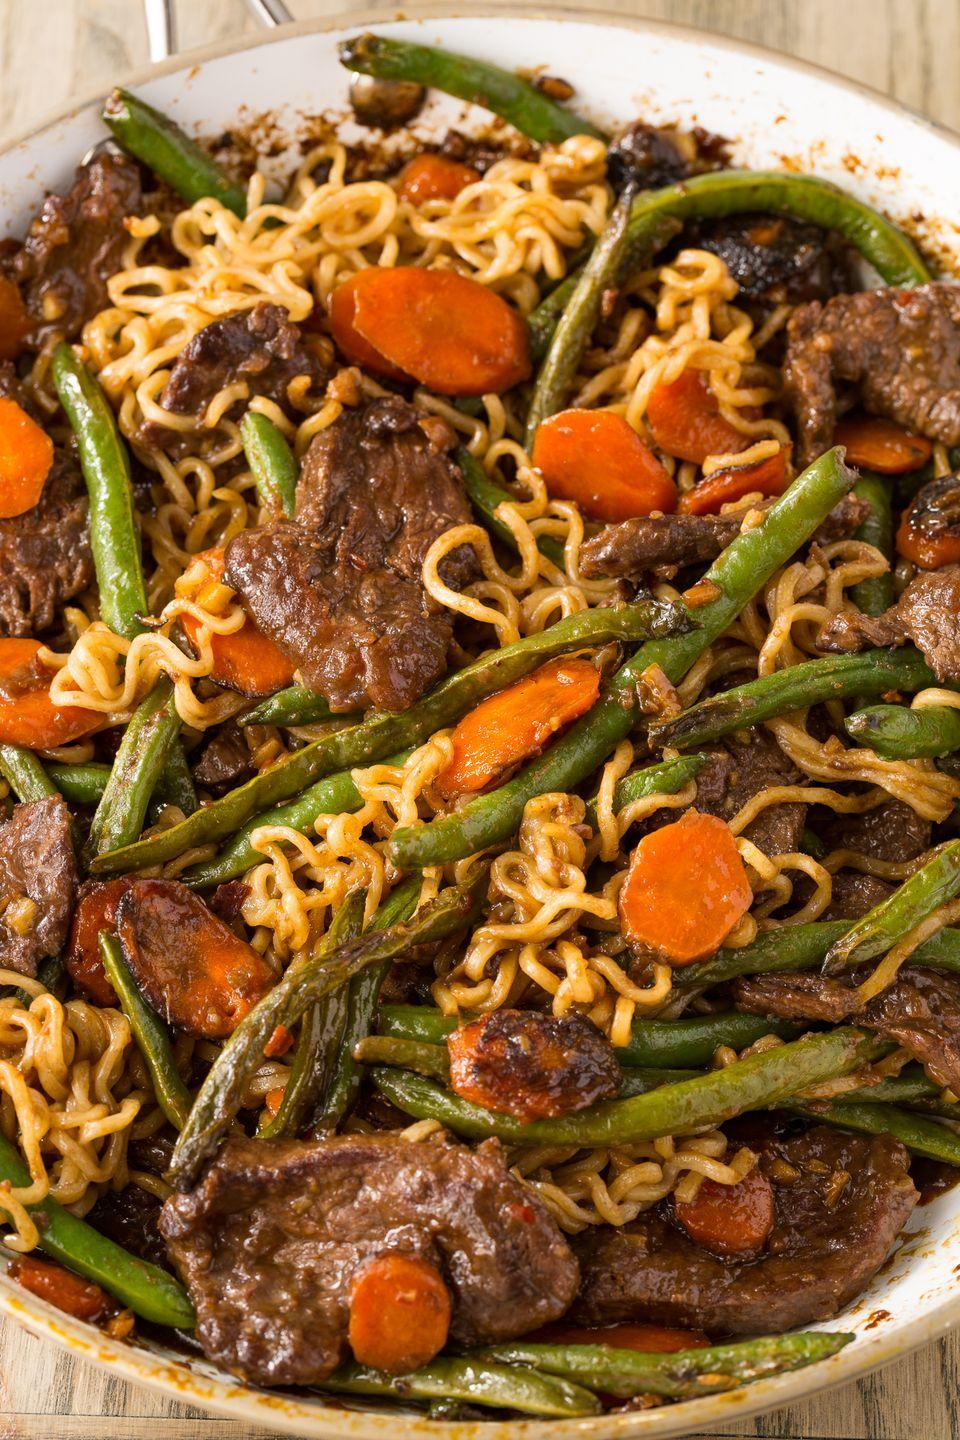 """<p>This stir-fry has a ginger-garlic kick that you won't be able to resist.</p><p>Get the recipe from <a href=""""https://www.delish.com/cooking/recipe-ideas/recipes/a46825/ginger-beef-stir-fry-with-ramen-recipe/"""" rel=""""nofollow noopener"""" target=""""_blank"""" data-ylk=""""slk:Delish"""" class=""""link rapid-noclick-resp"""">Delish</a>. </p>"""